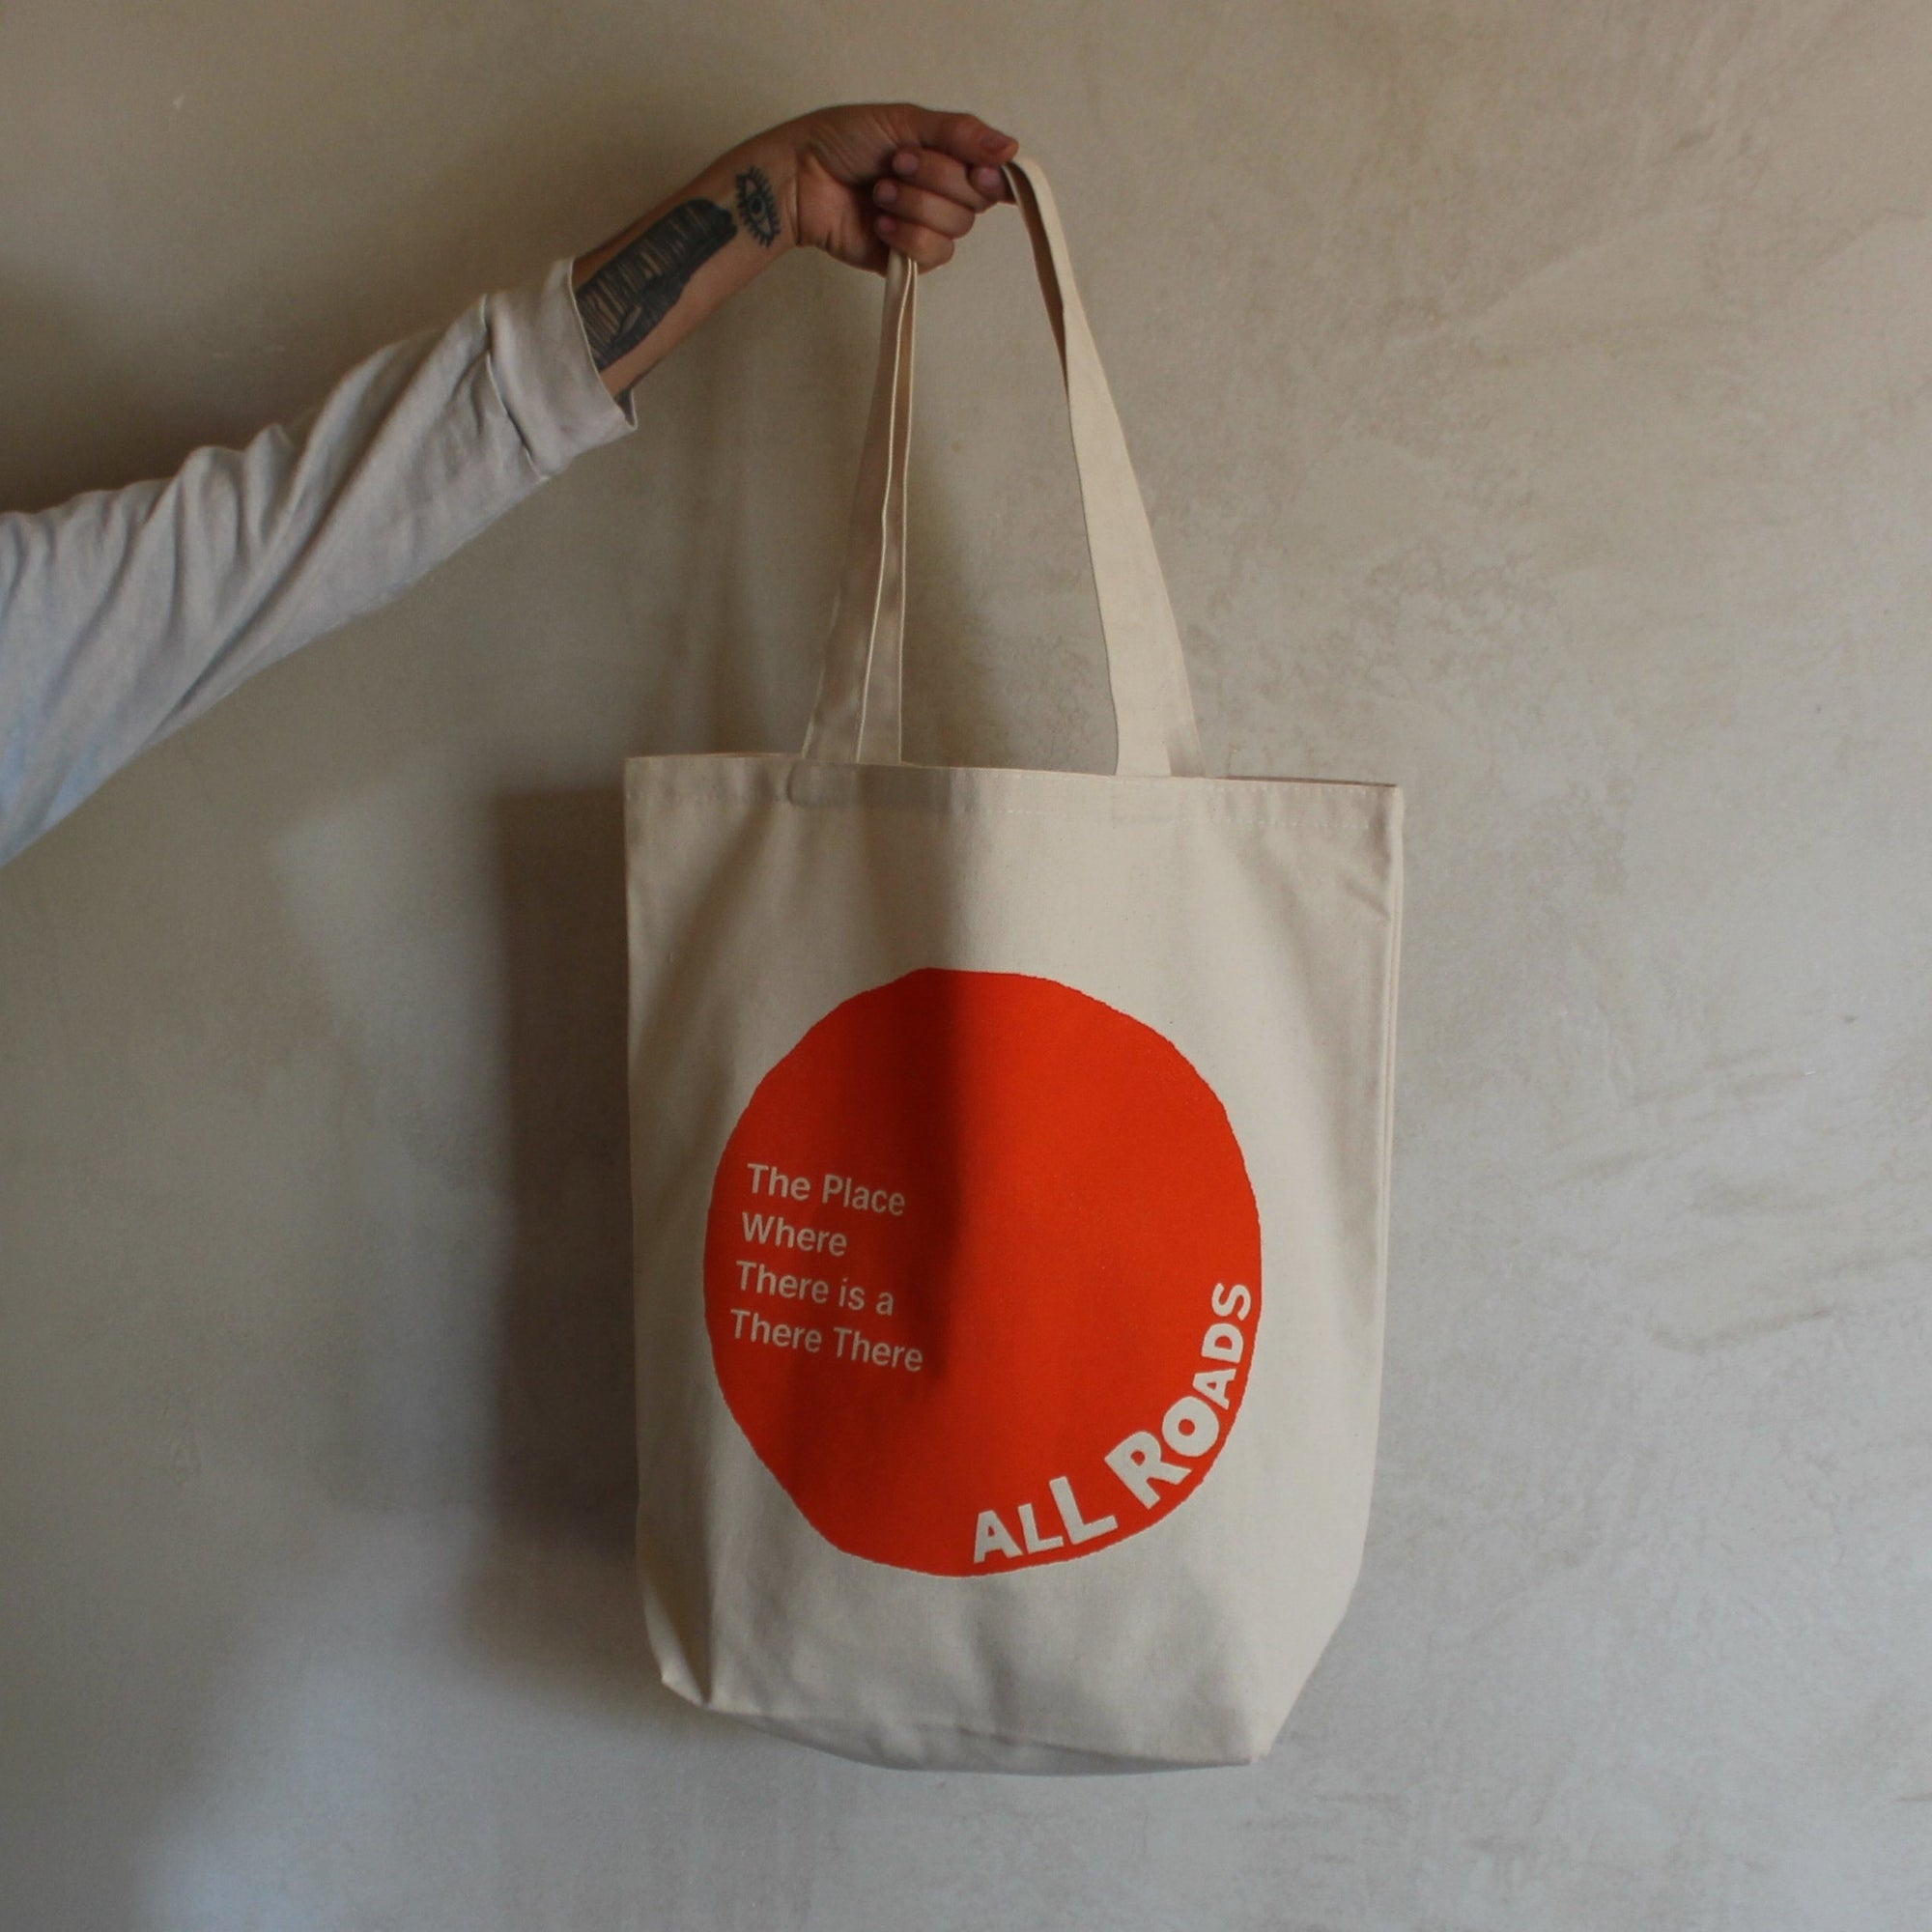 ALL ROADS, Placewares / All Roads Tote, - Placewares